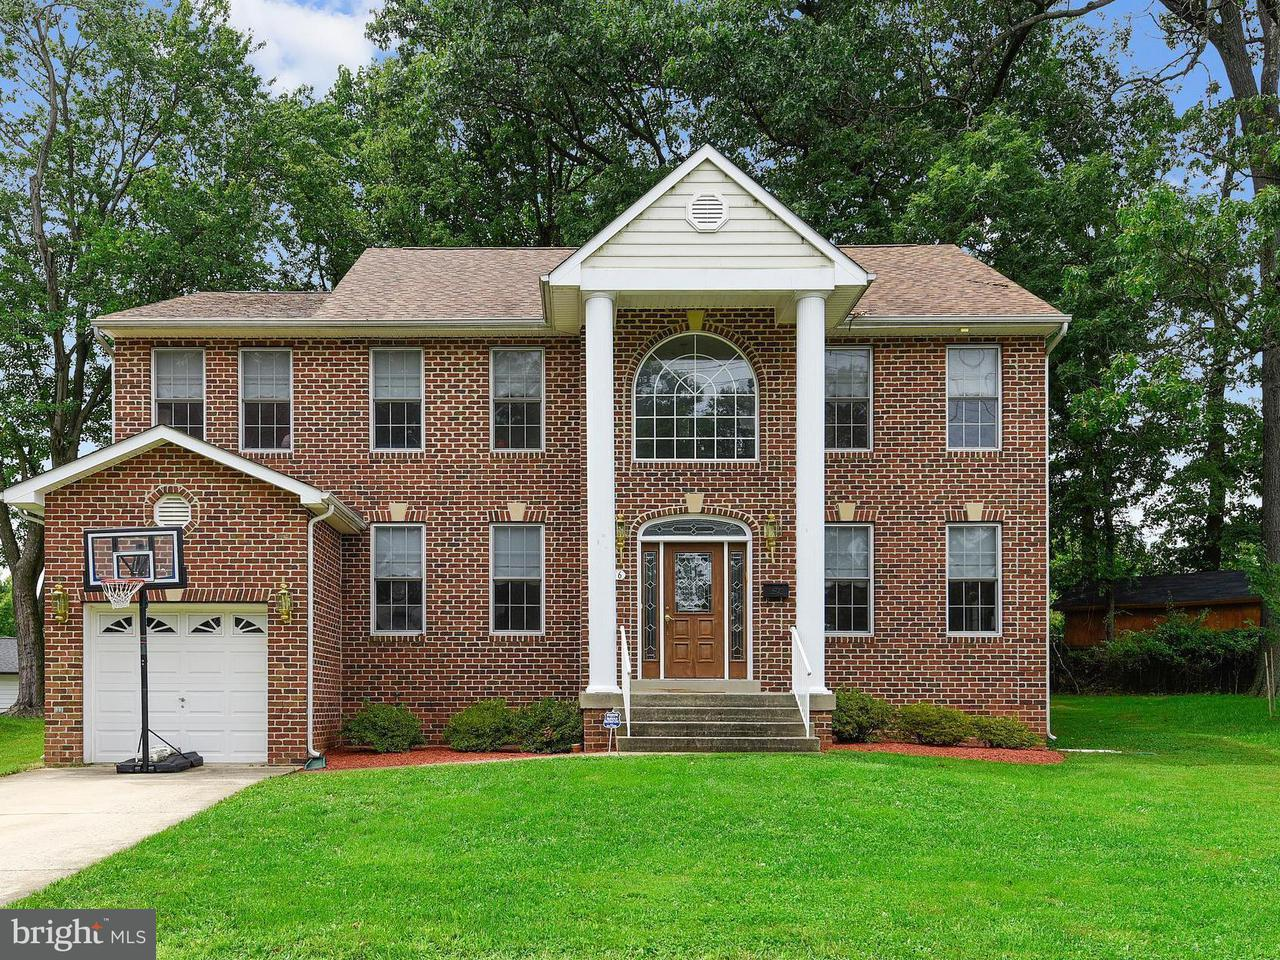 Single Family Home for Sale at 11216 Monticello Avenue 11216 Monticello Avenue Silver Spring, Maryland 20902 United States